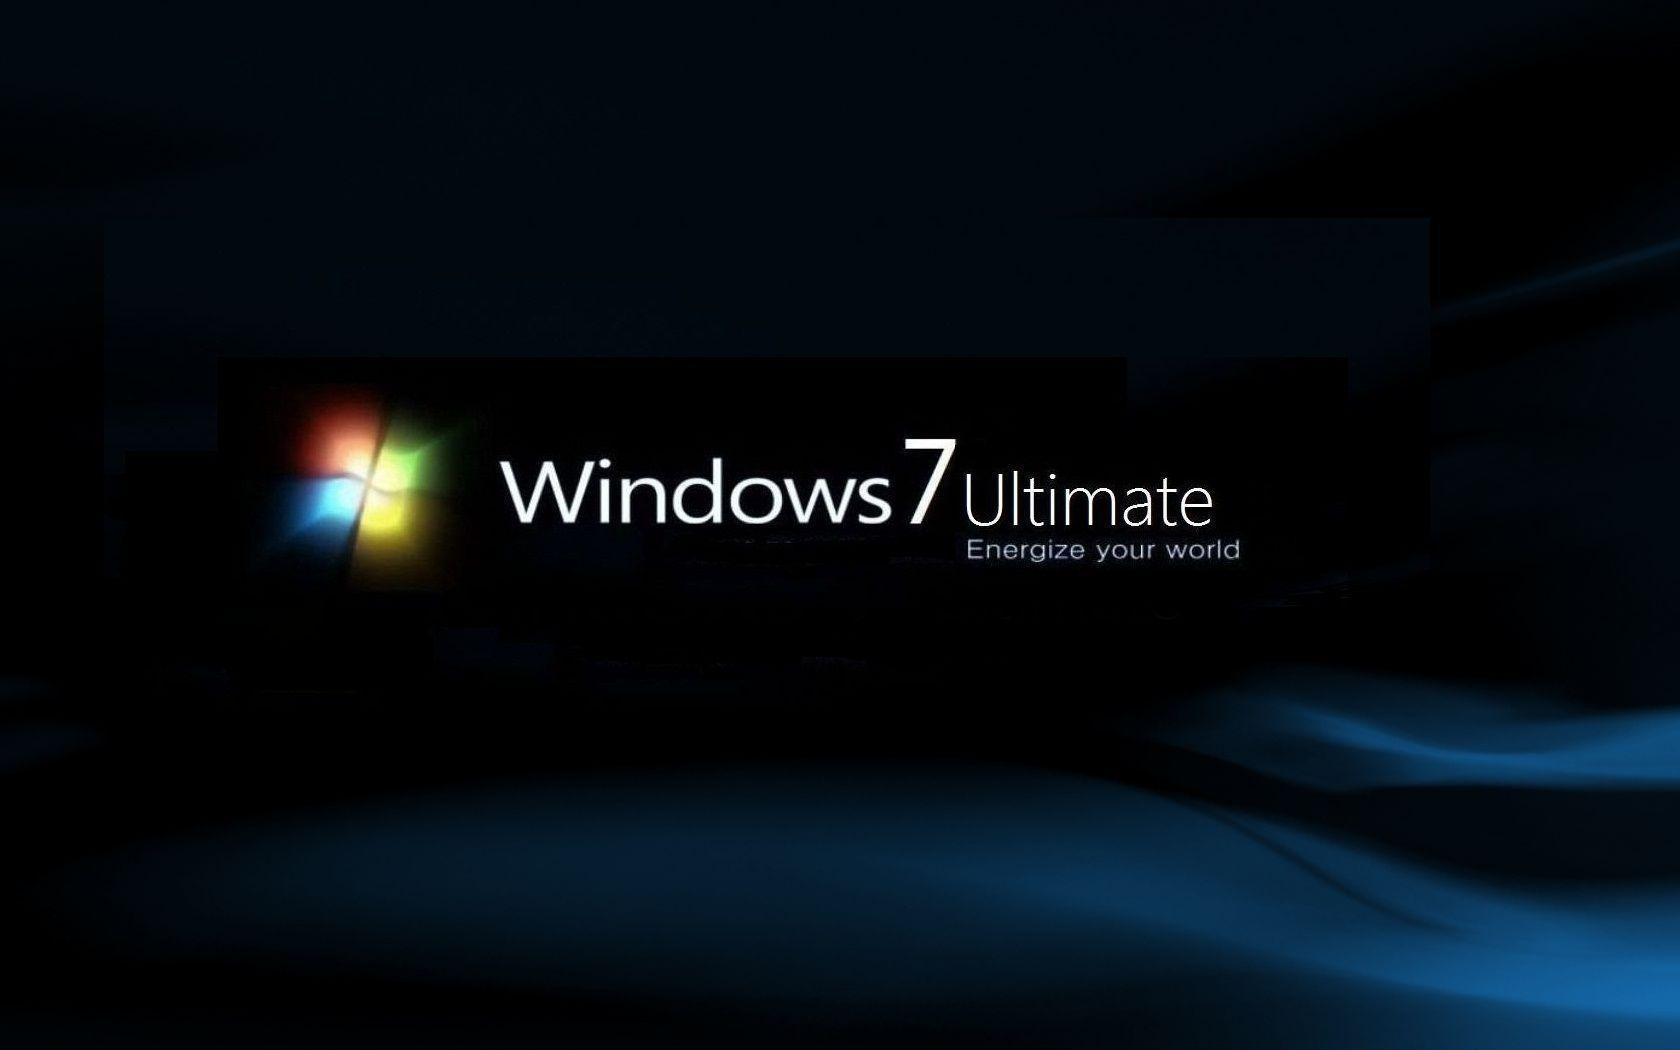 Windows 7 Ultimate Wallpapers HD Wallpaper Cave